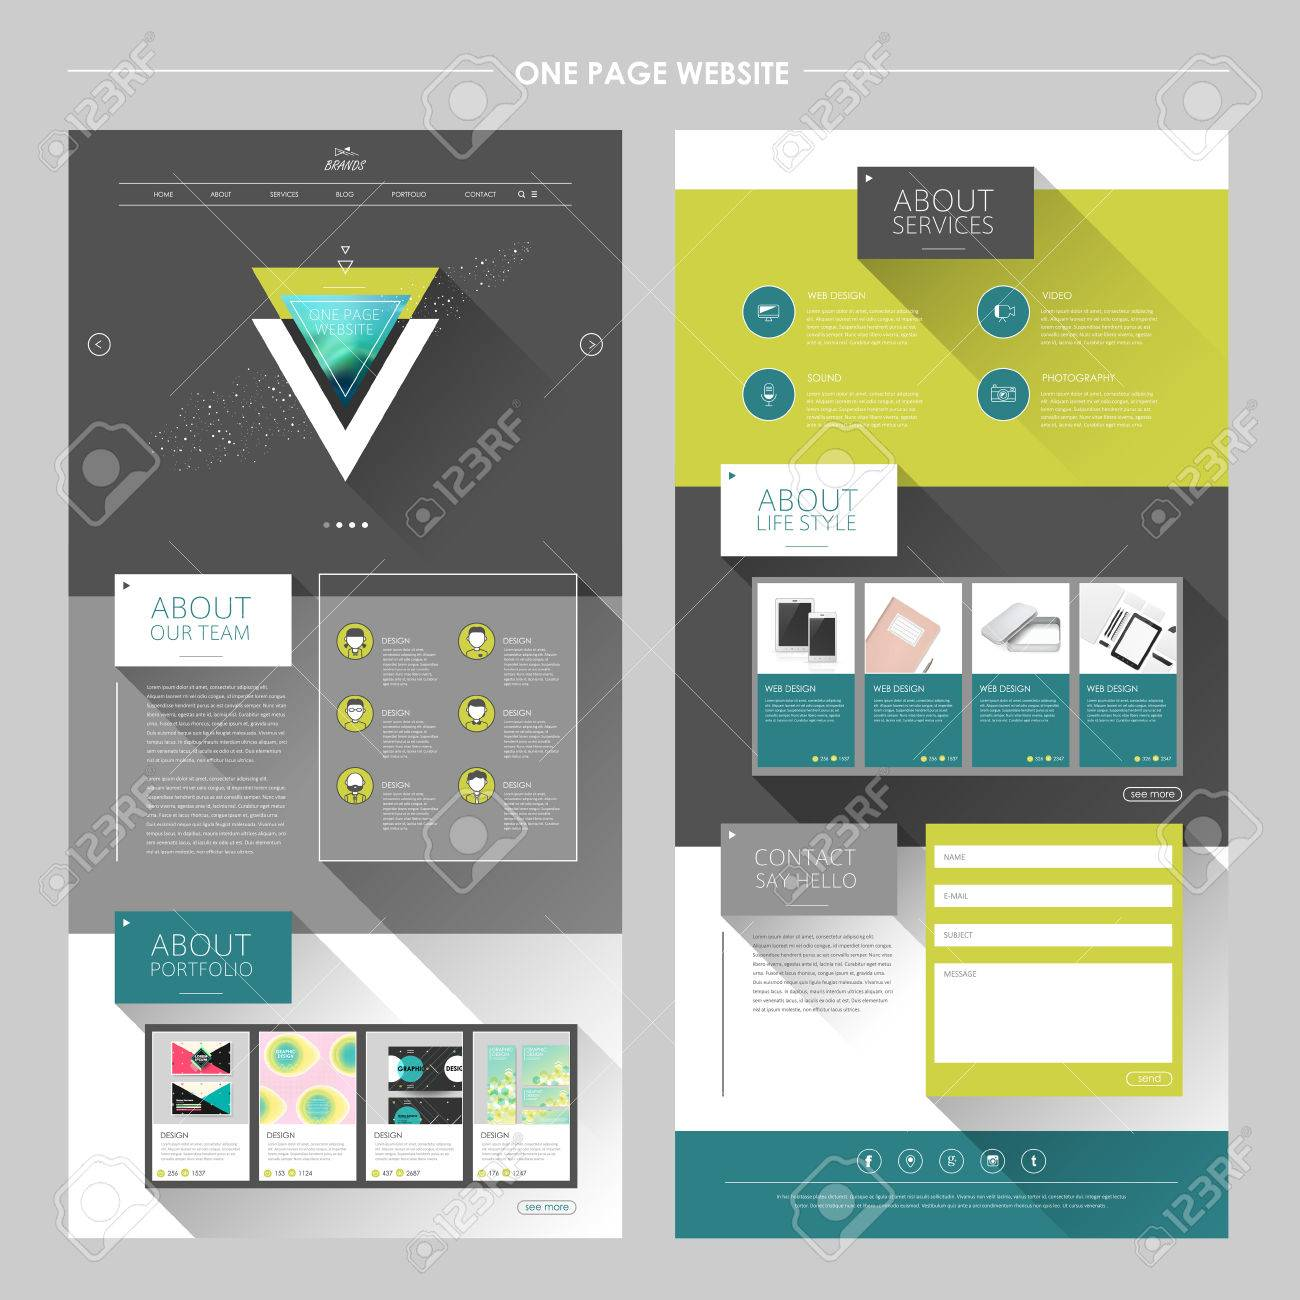 Delighted 2 Page Resume Template Word Tiny 2014 Sample Resume Templates Square 2015 Calendar Template 2015 Printable Calendar Template Youthful 3d Character Modeler Resume Green3d Powerpoint Presentation Templates Modern Geometric One Page Website Template With Long Shadows ..